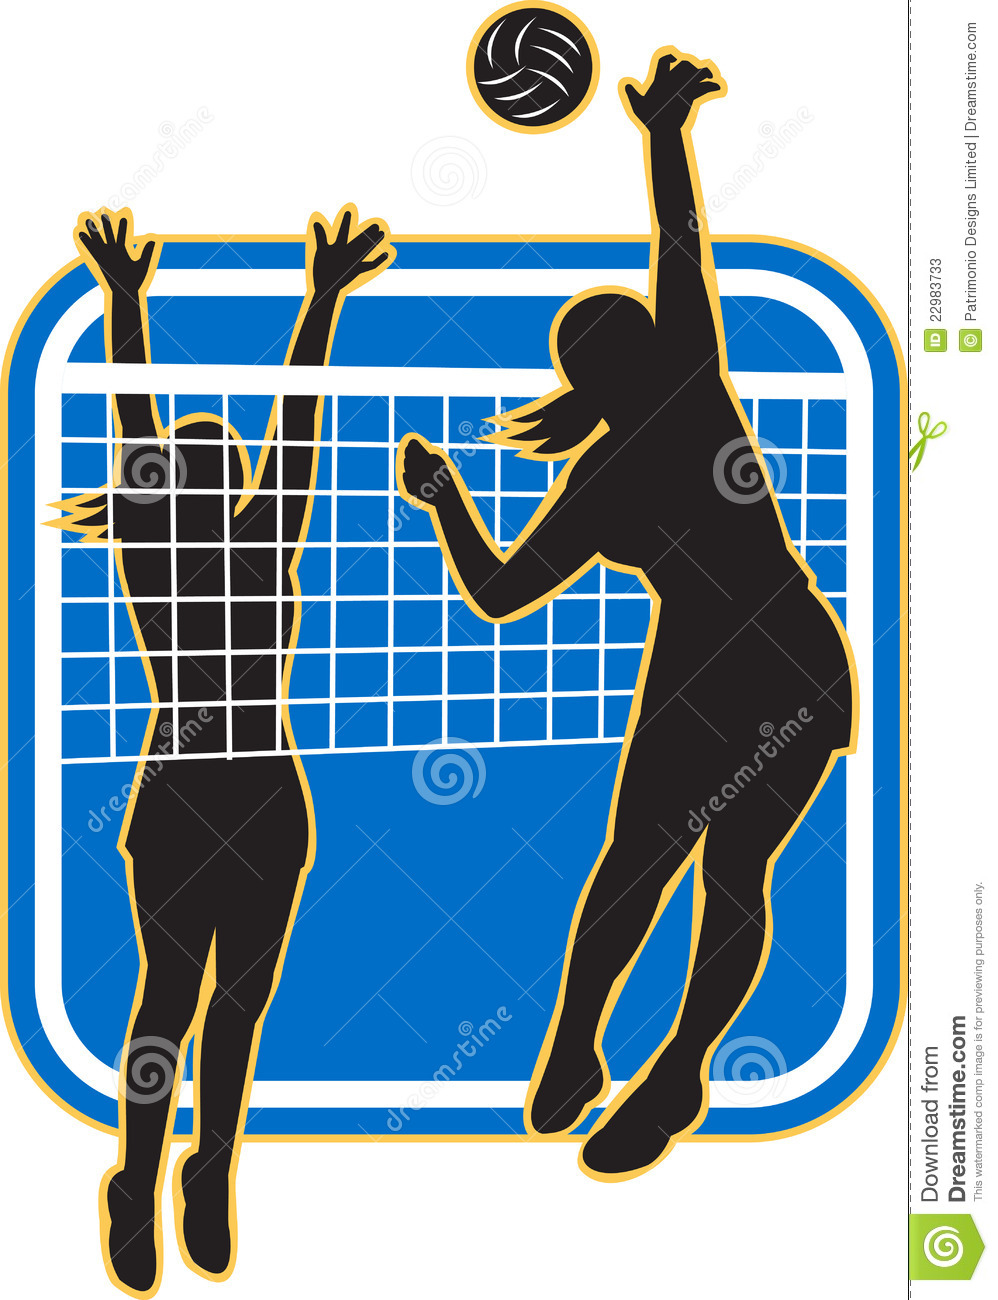 Blocking Volleyball Stock Illustrations 133 Blocking Volleyball Stock Illustrations Vectors Clipart Dreamstime